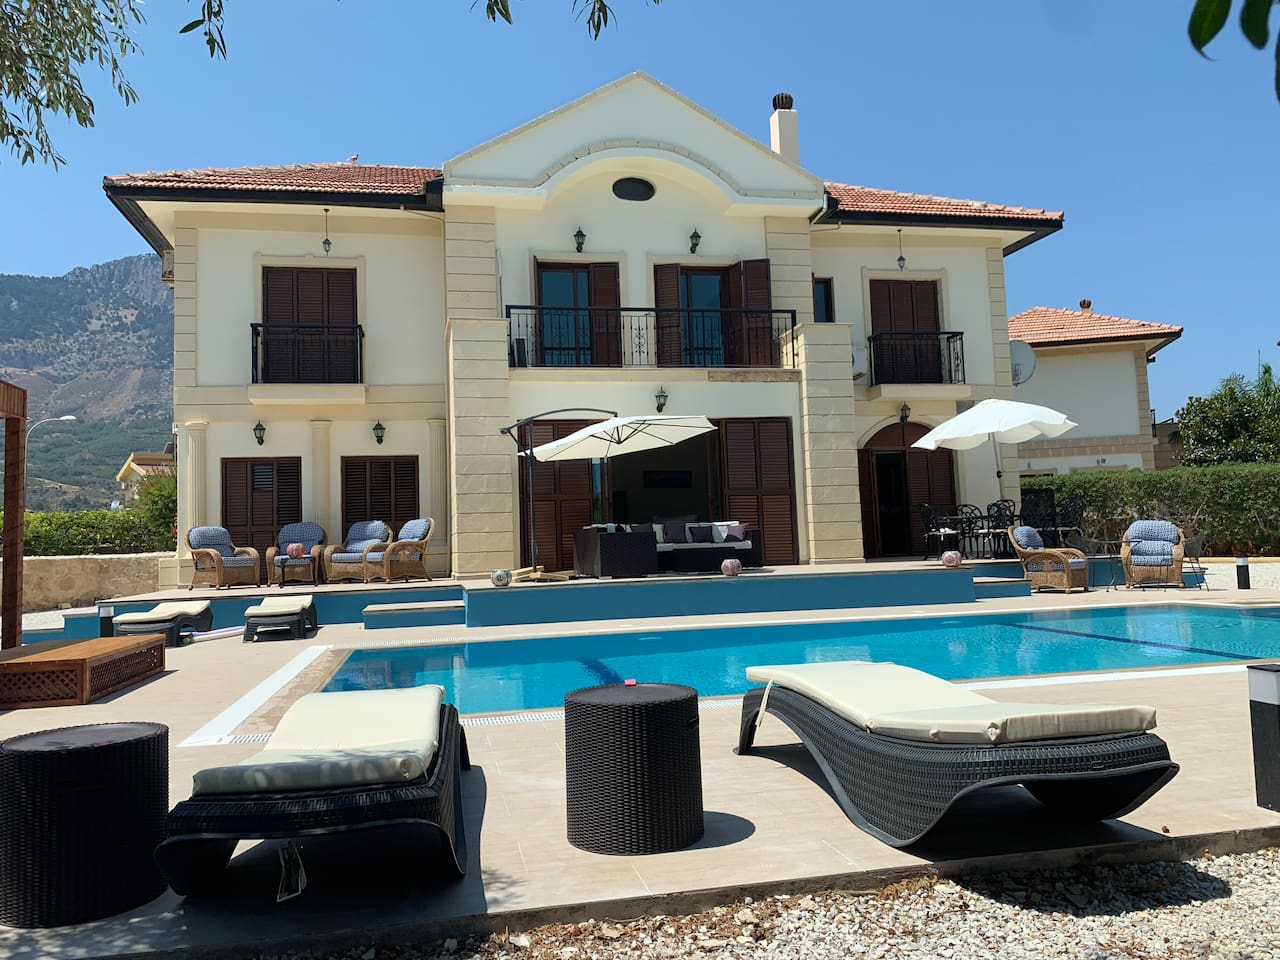 Luxury villa sleeps 8 people